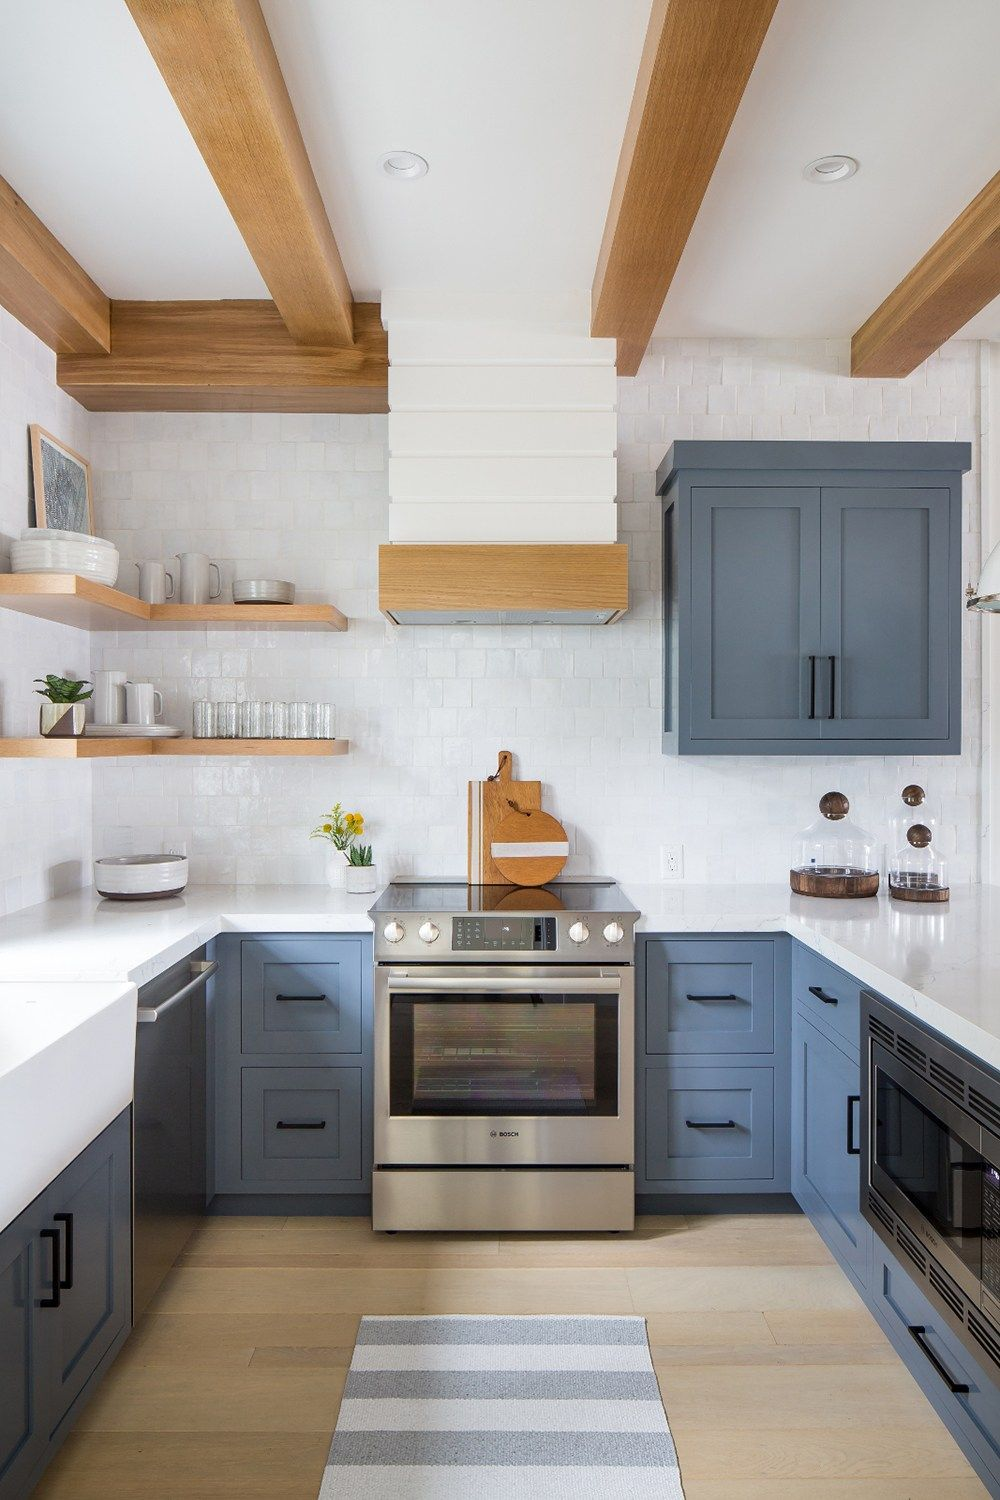 Noteworthy dreaming of a beach house kitchens house home kitchen